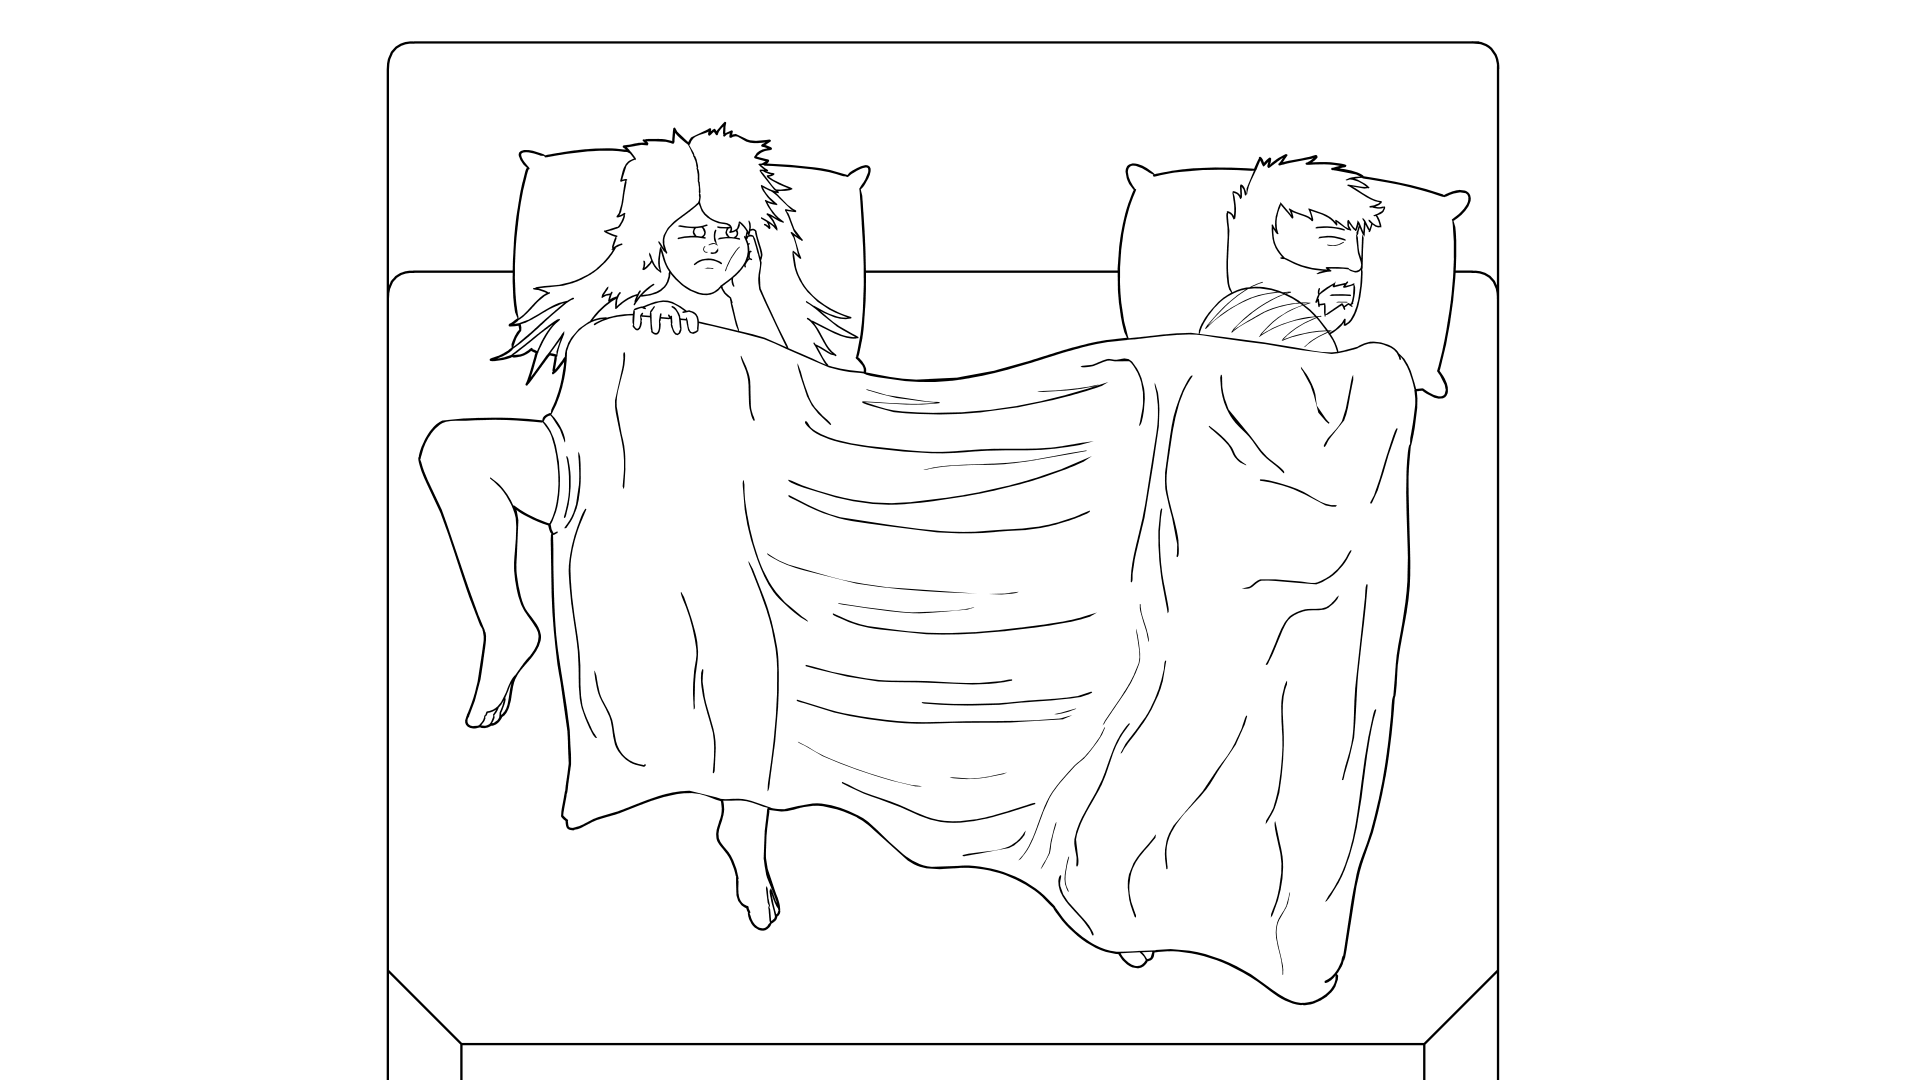 5081347_141385028741_coupleinbed3.png